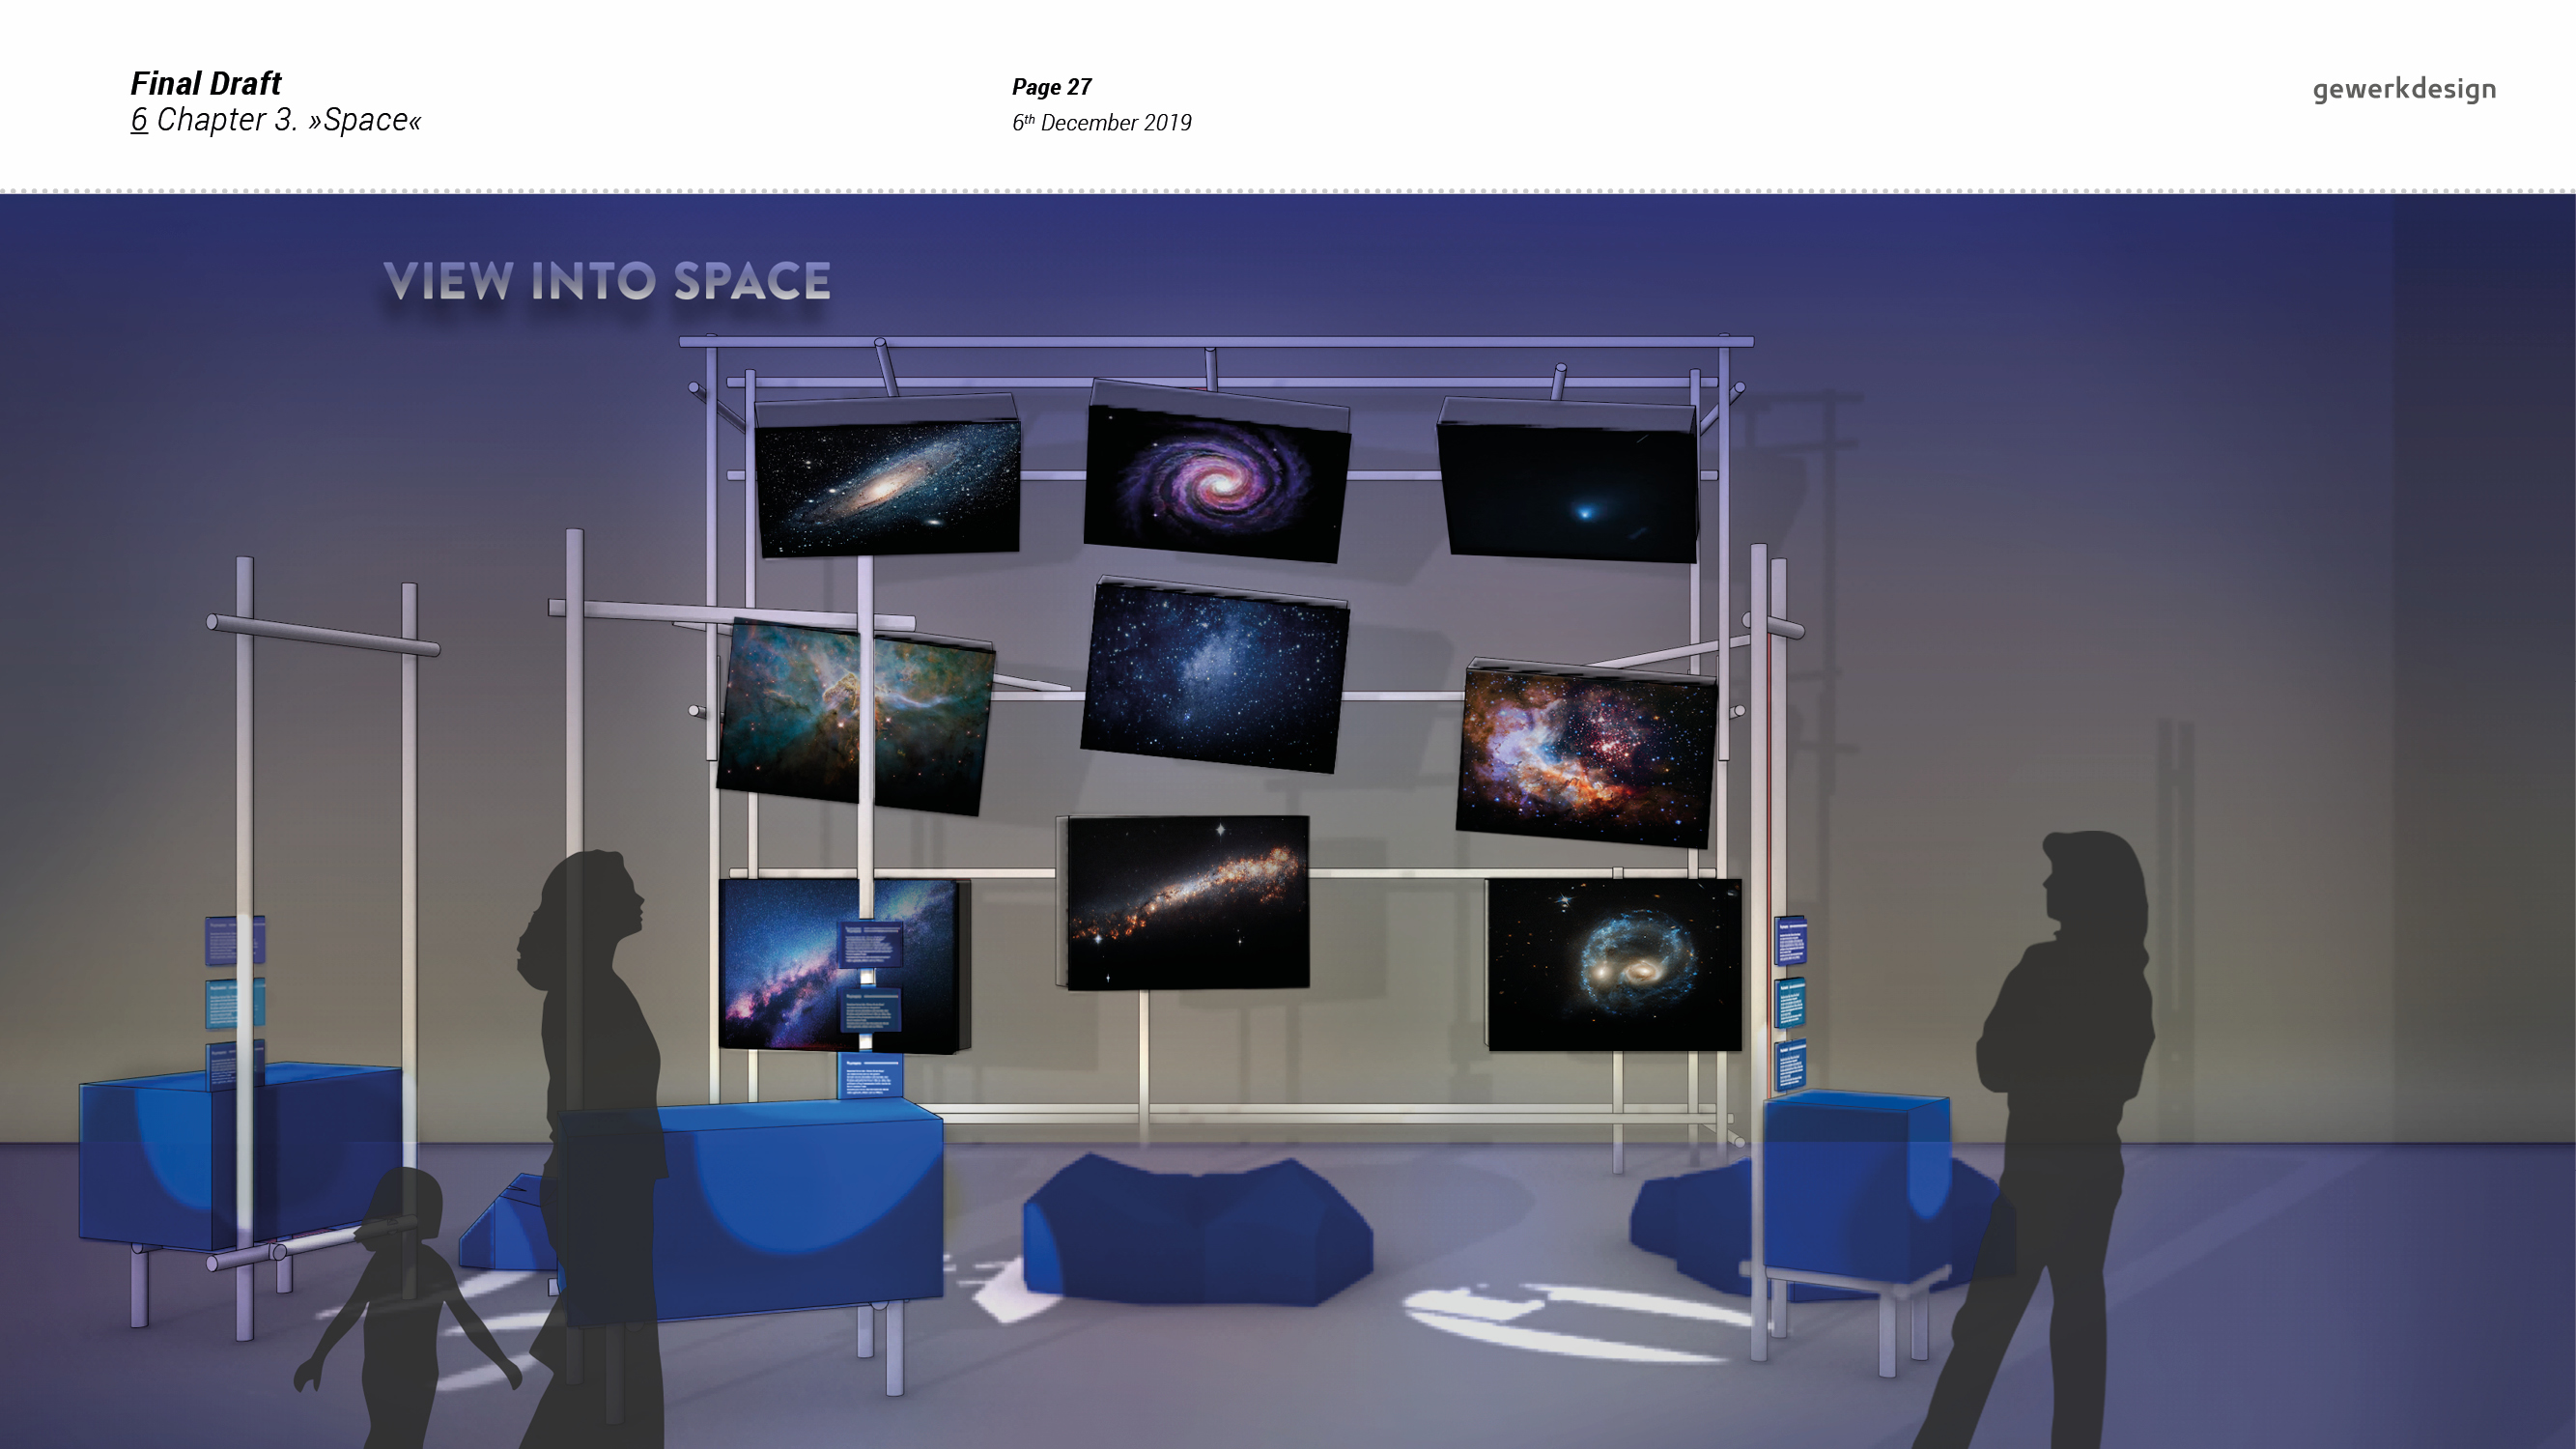 "<span class=""deutsch"">Entwurfsprozess: Visualisierung 3D-Thema View into space</span><span class=""englisch"">design process: visualising the chapter_View into space</span>"